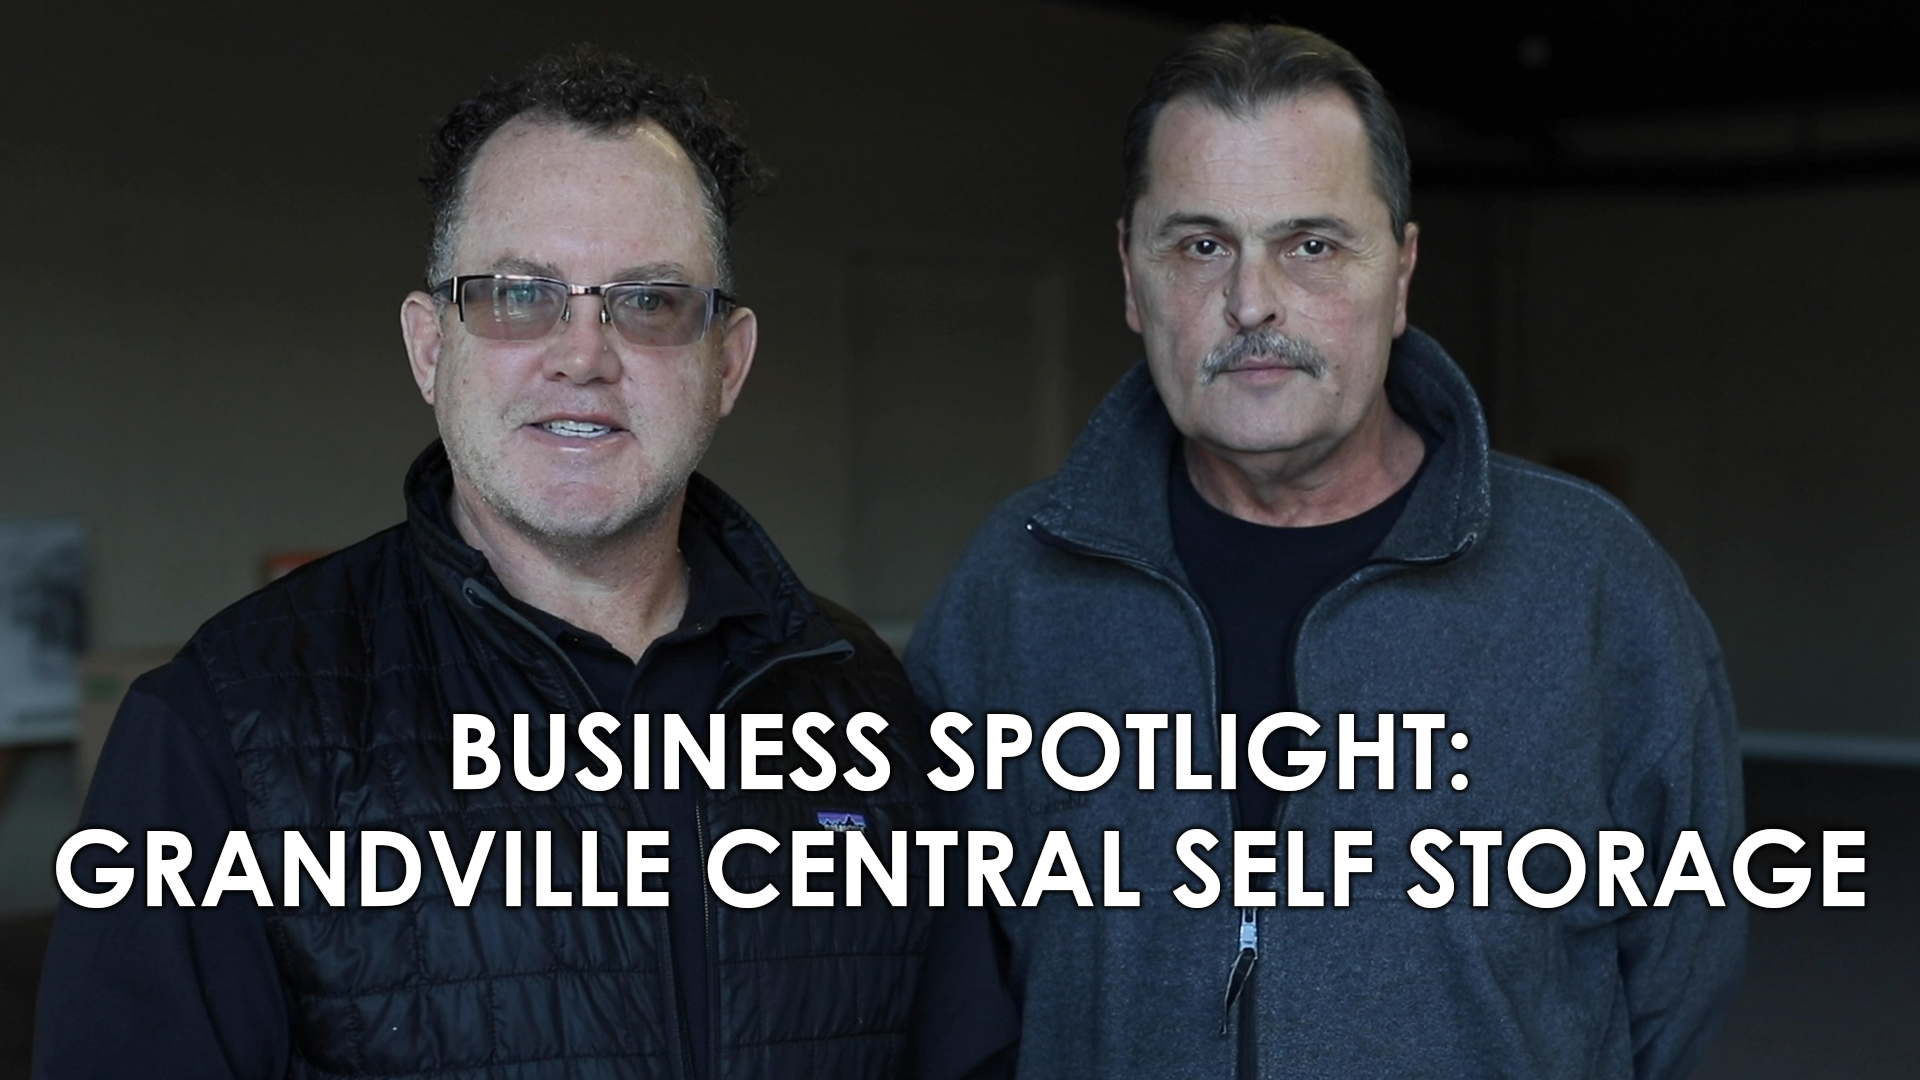 A Conversation With Jack McCormick From Grandville Central Self Storage